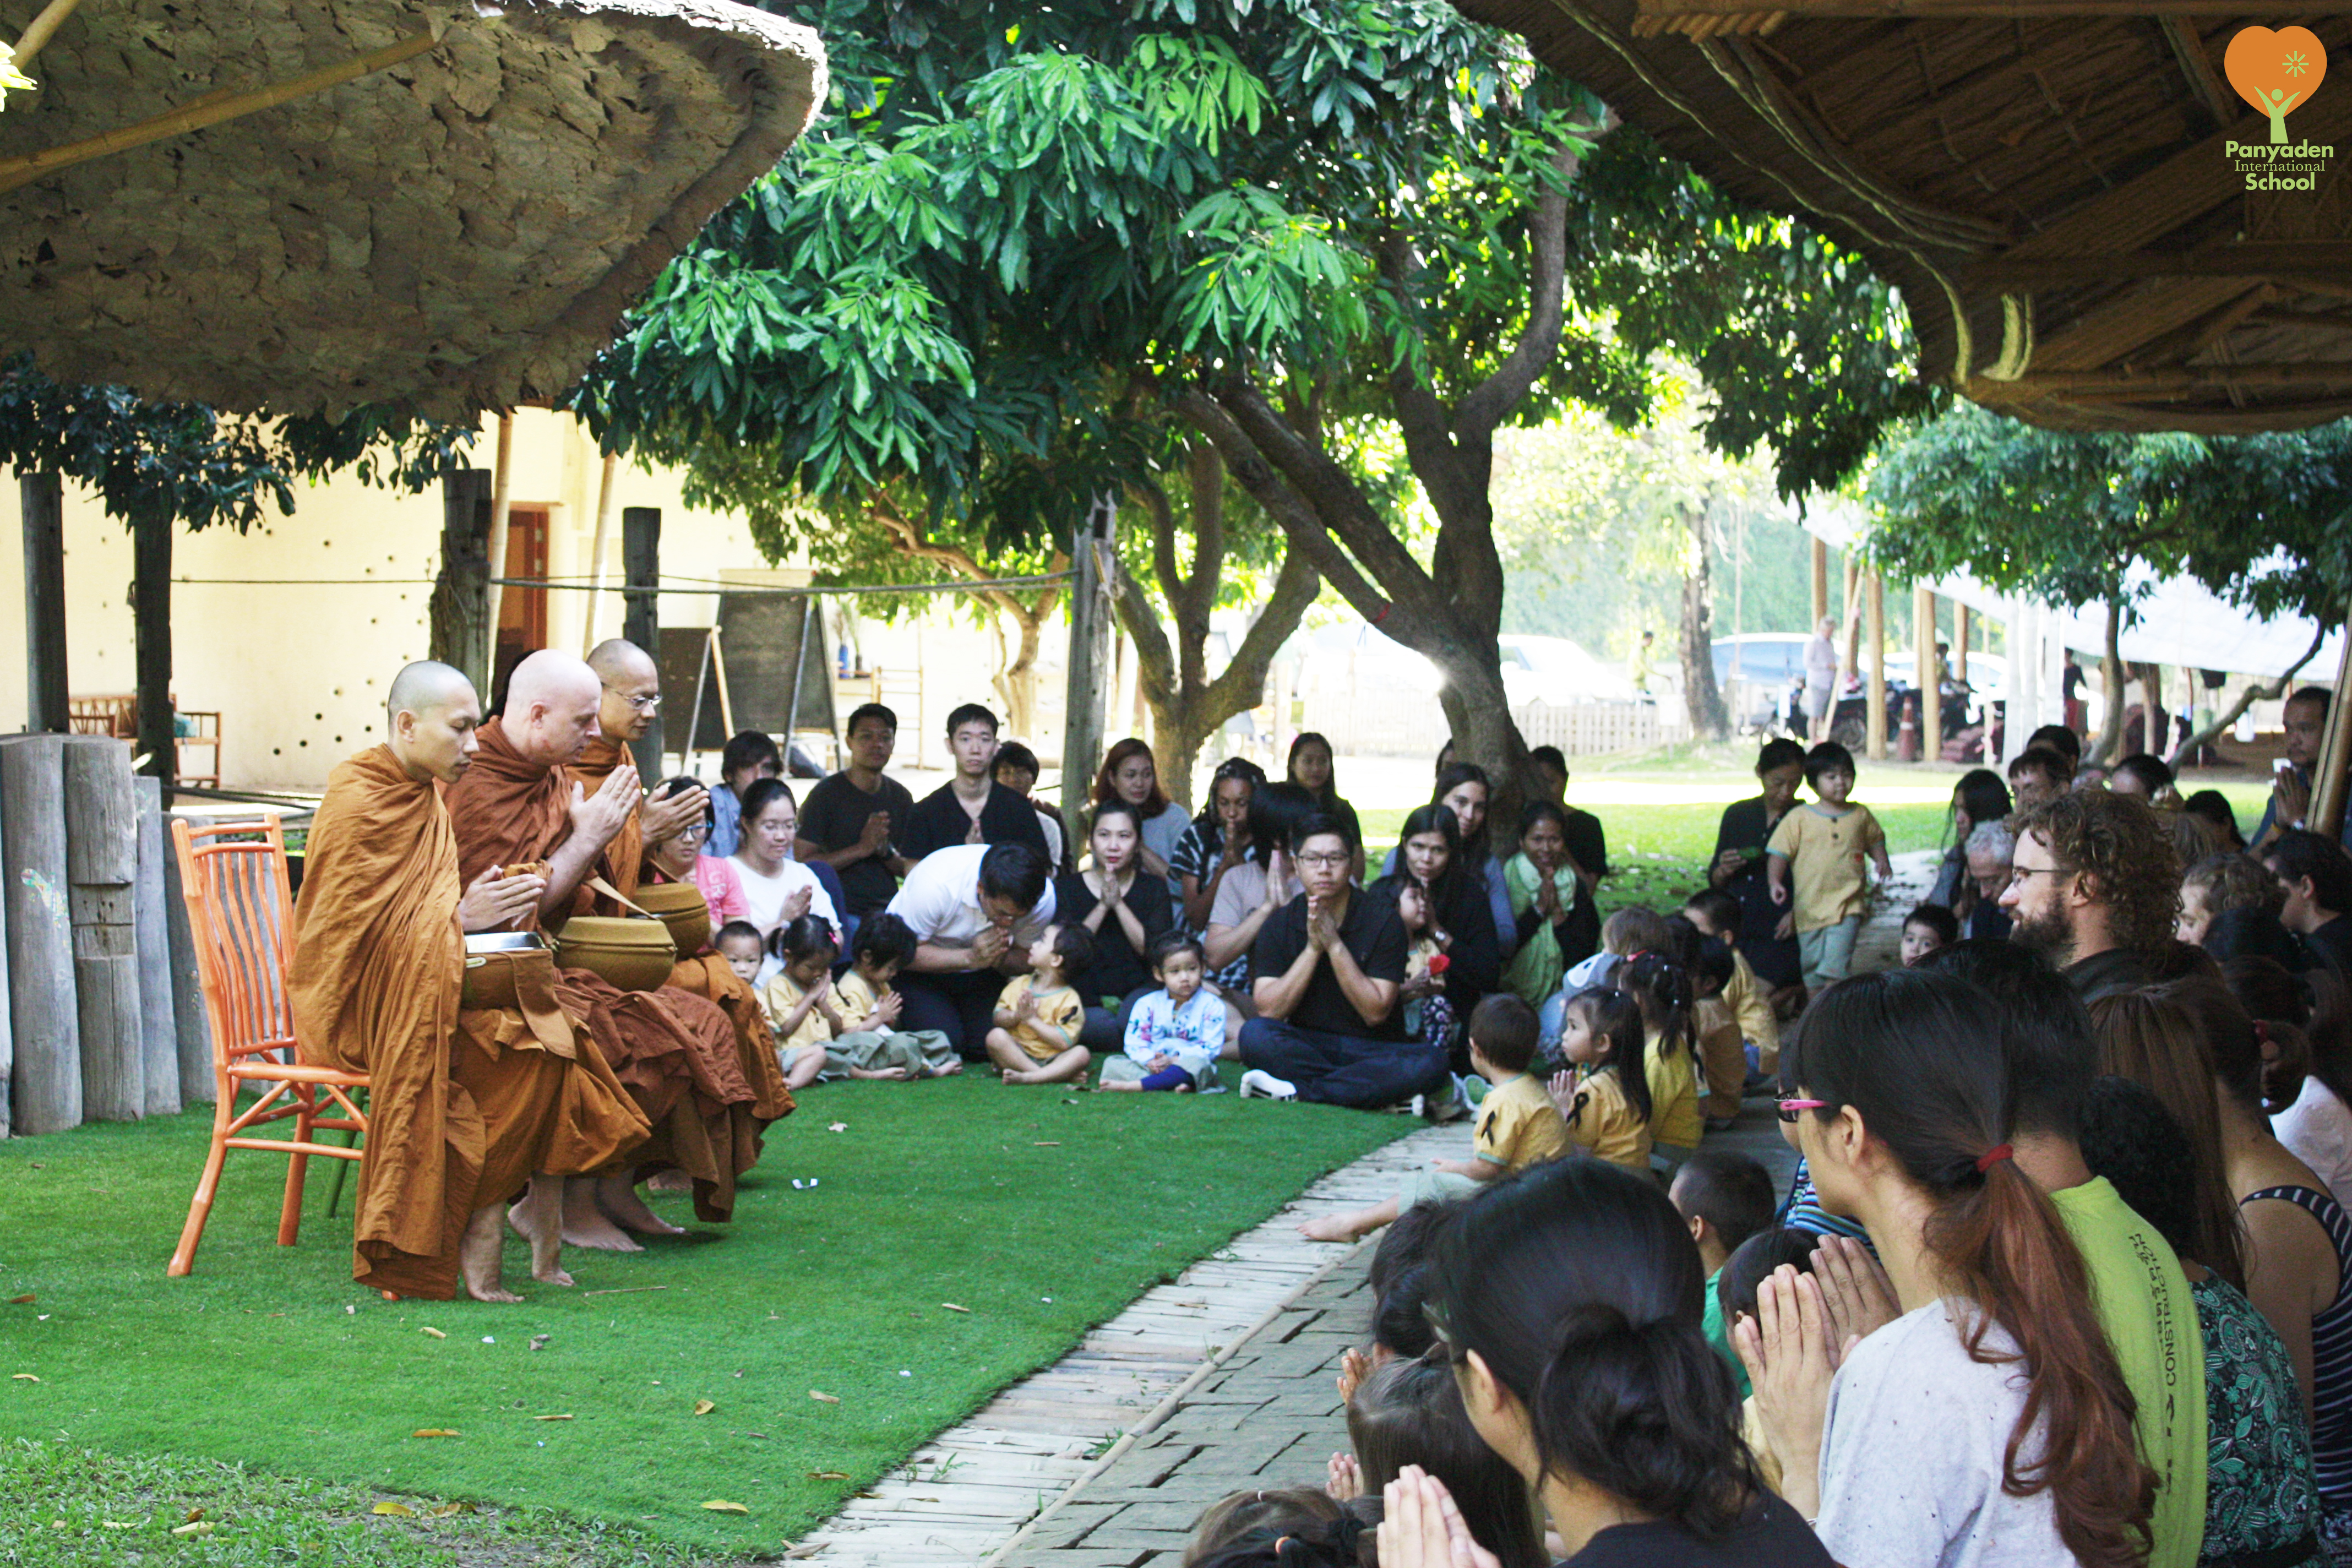 Morning prayers/alms offering to Ven. Ajahn Jayasaro at Panyaden International School